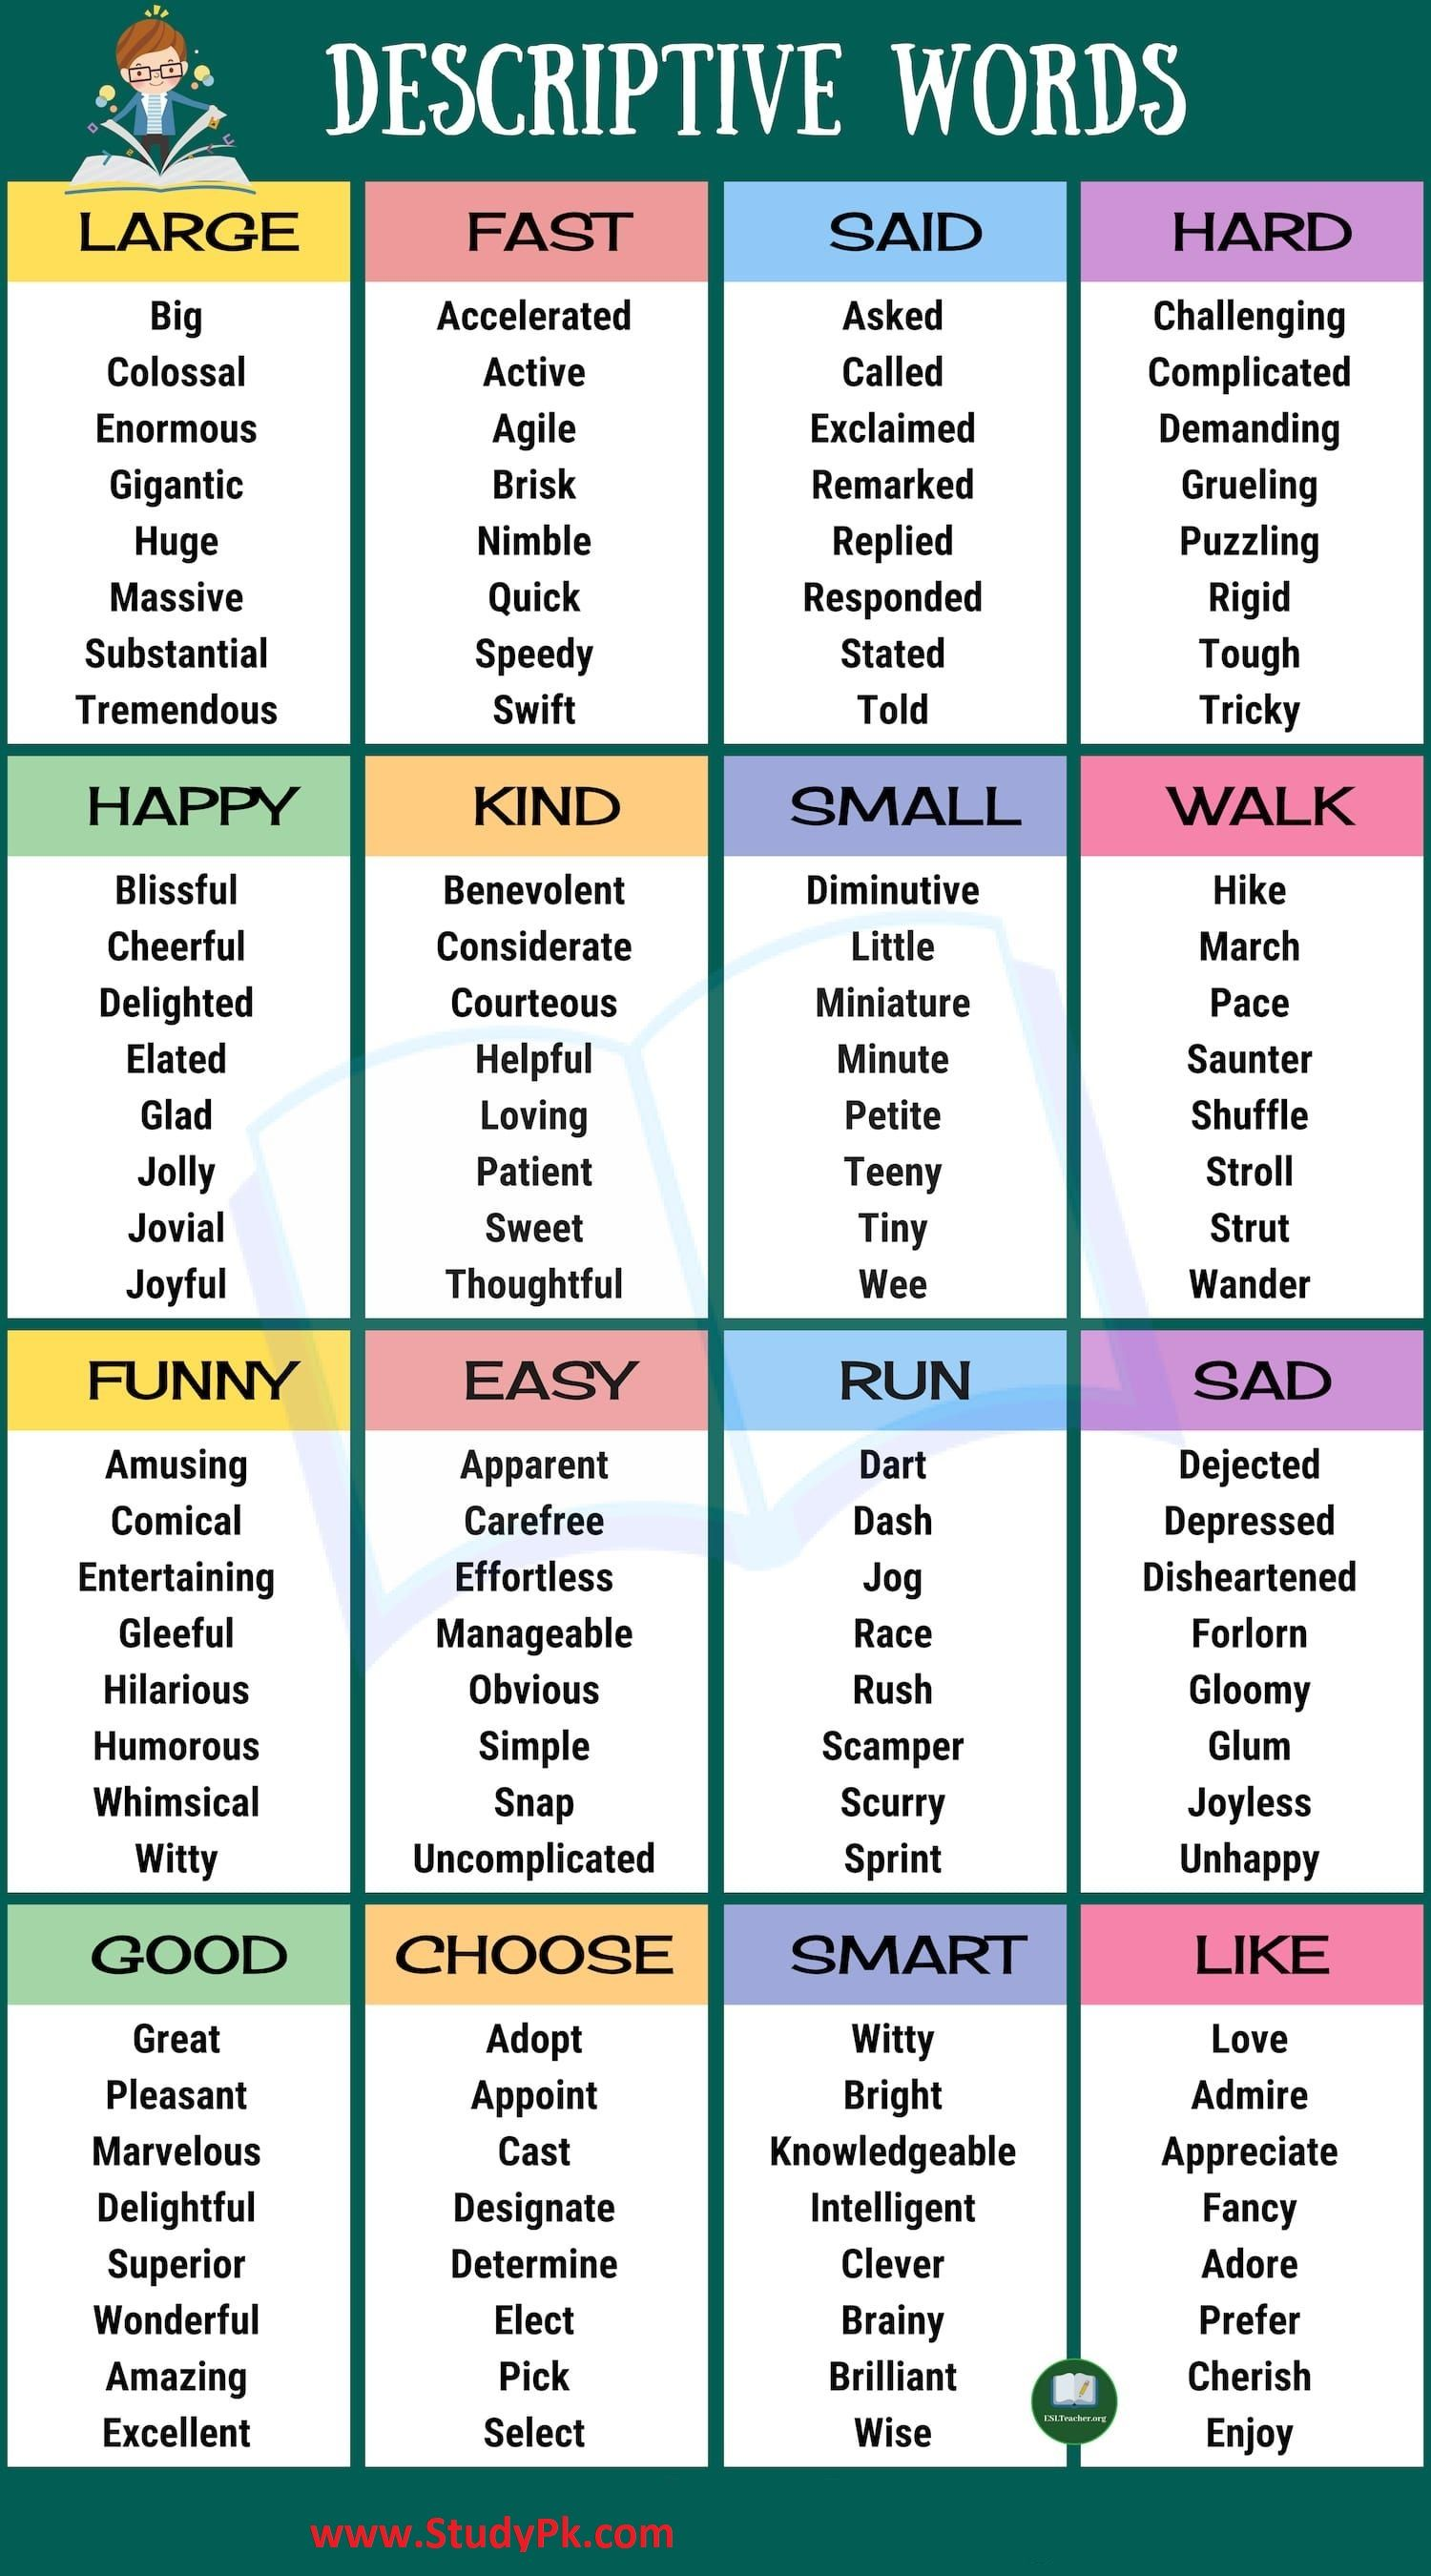 List of Descriptive Words: Adjectives, Adverbs and Gerunds in English